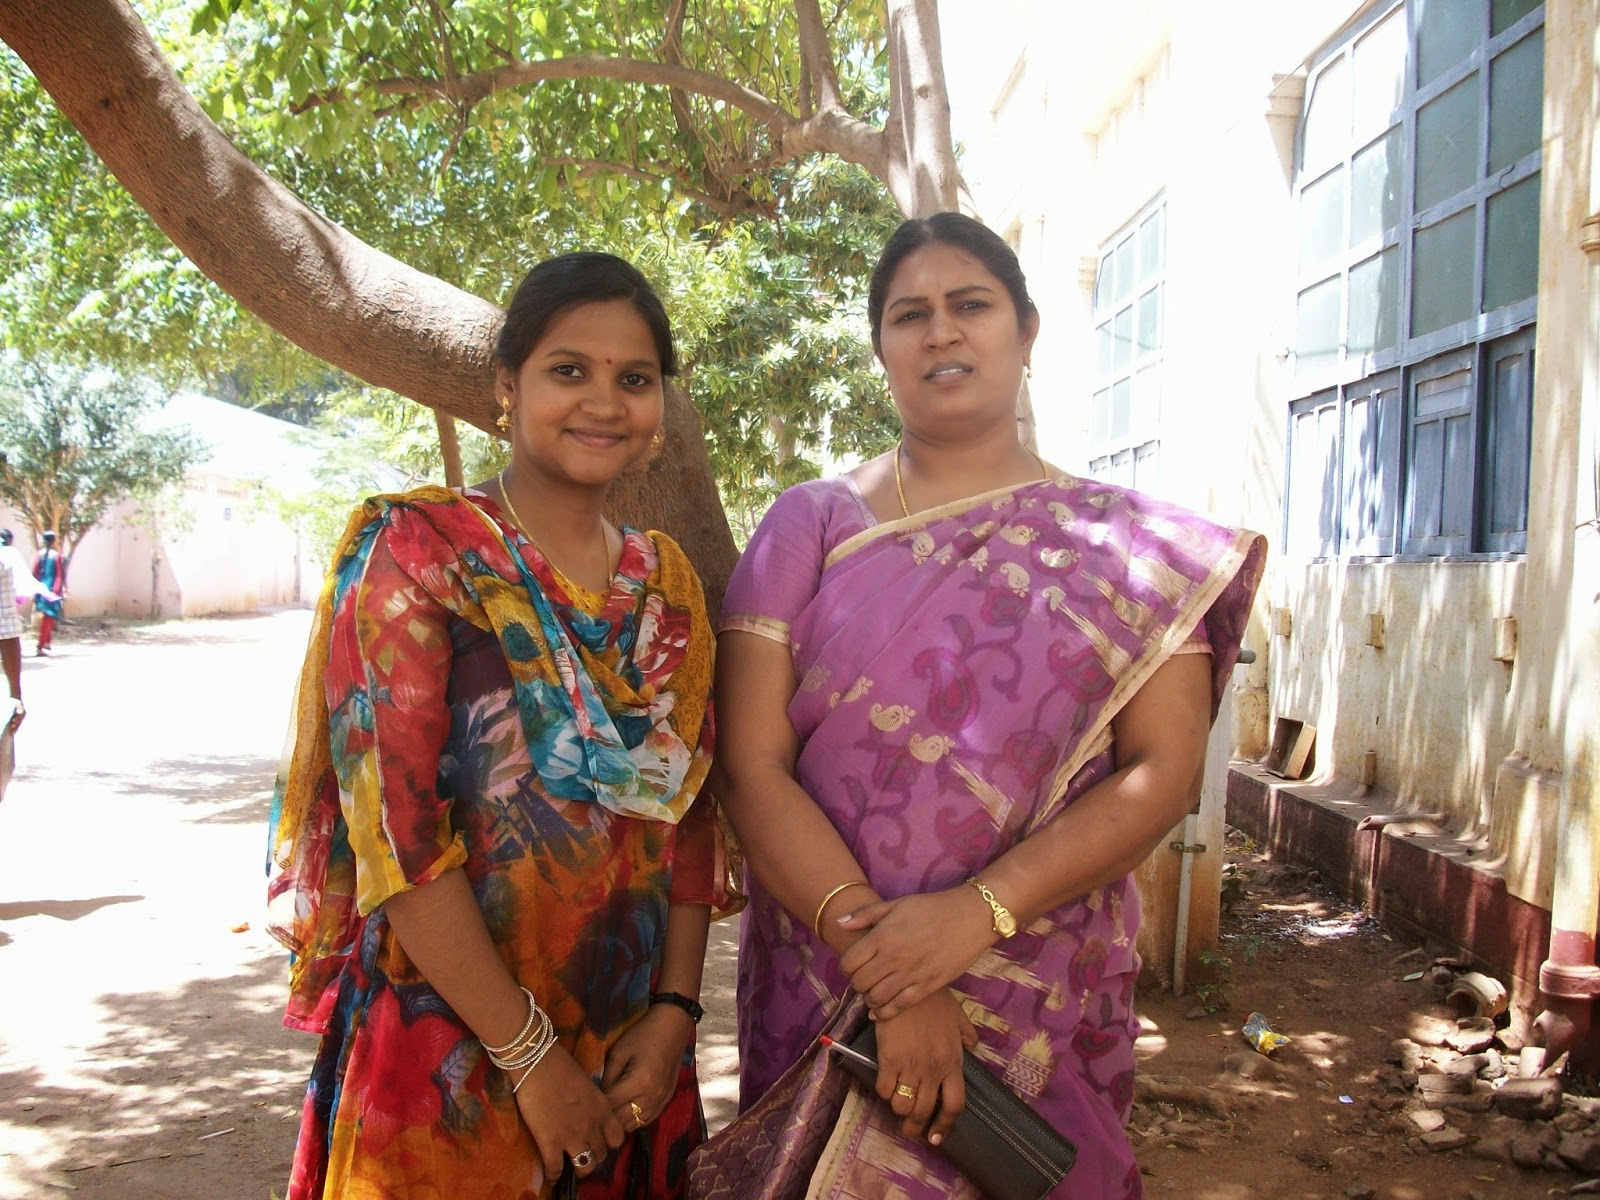 madurai women Madurai's best 100% free online dating site meet loads of available single women in madurai with mingle2's madurai dating services find a girlfriend or lover in madurai, or just have fun.